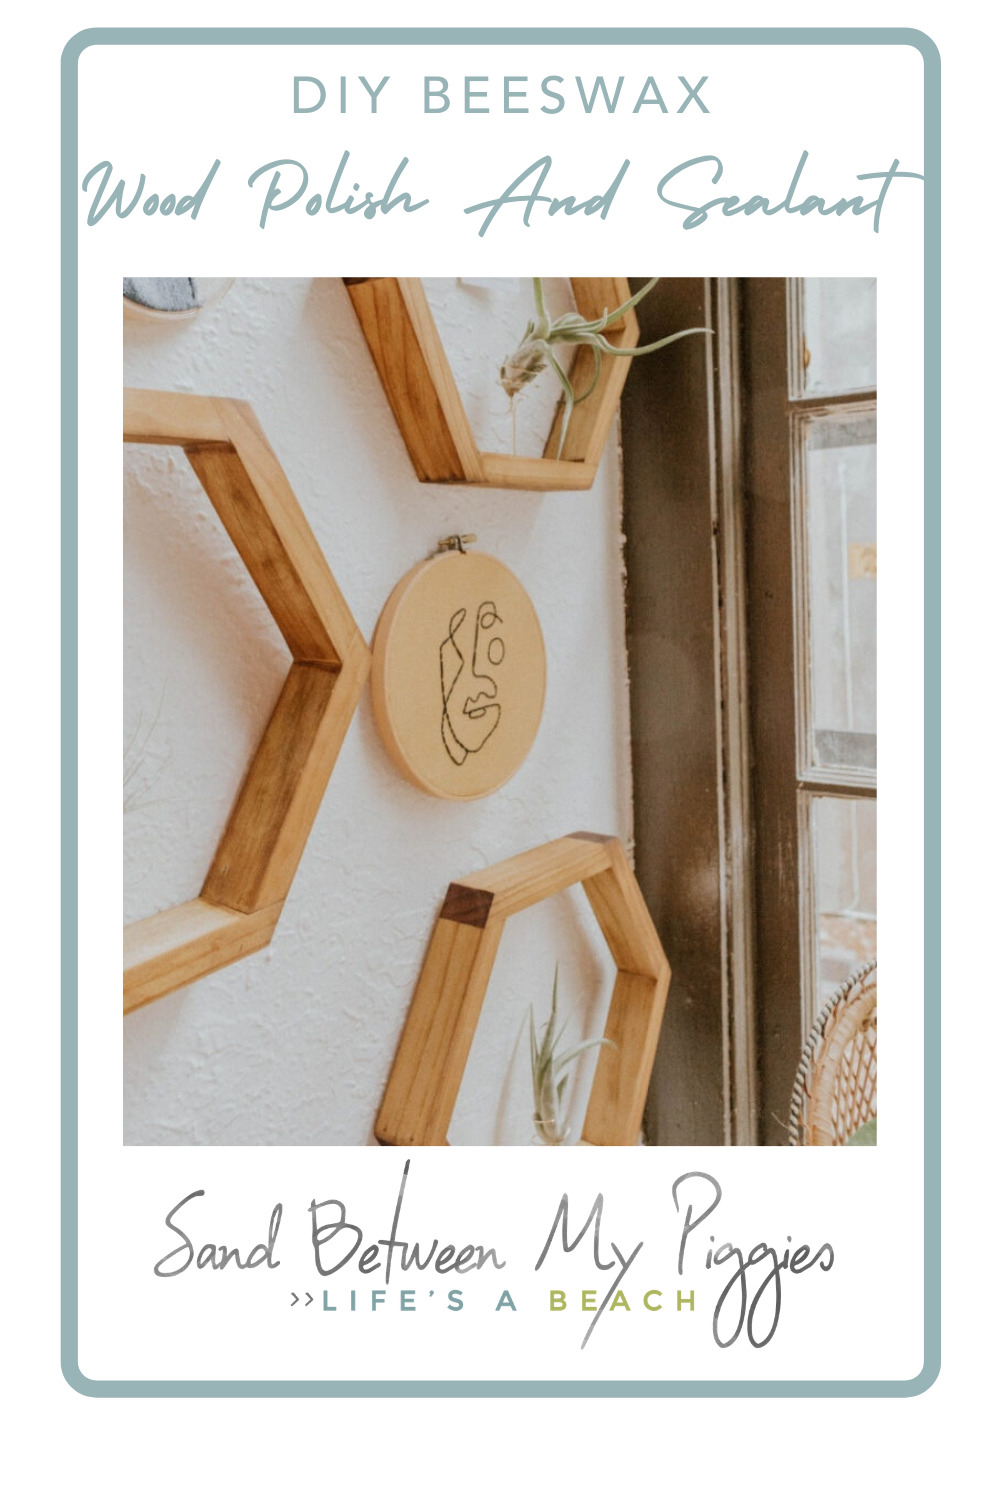 Sandbetweenmypiggies.com is the best place to find cozy, beachy DIY projects. Find creative ways to make things all on your own. Try out this simple DIY beeswax wood polish and sealant!